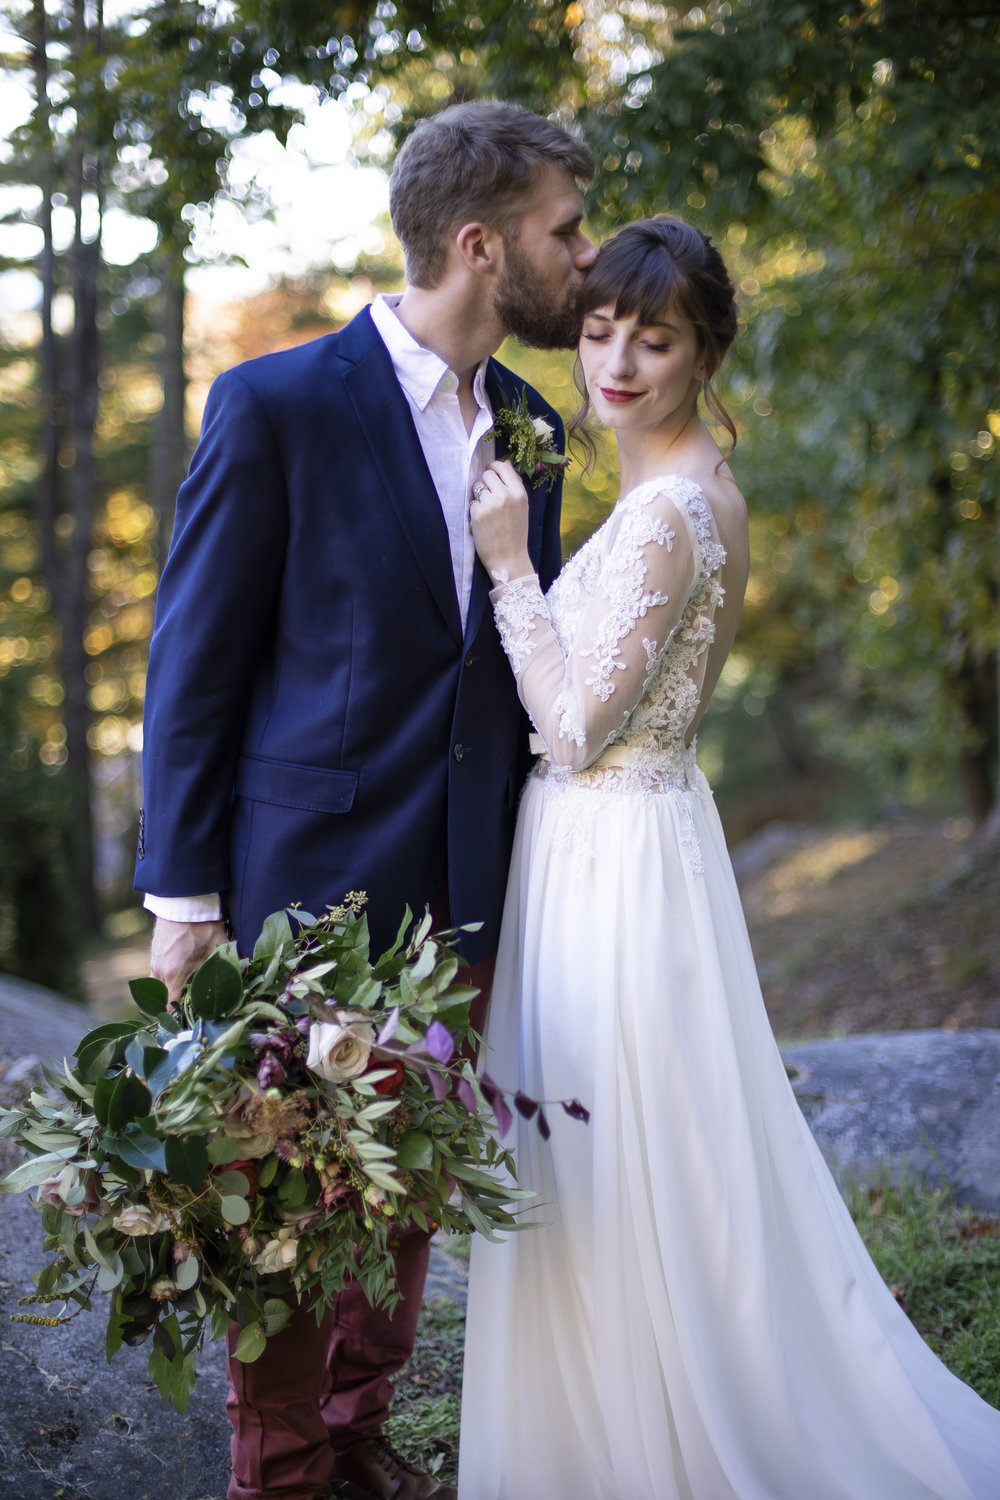 Laurel Falls Wedding October 2018_Allison and Josh__Lola Salon_Flora_Photo by Studio Misha Photography-39.jpg